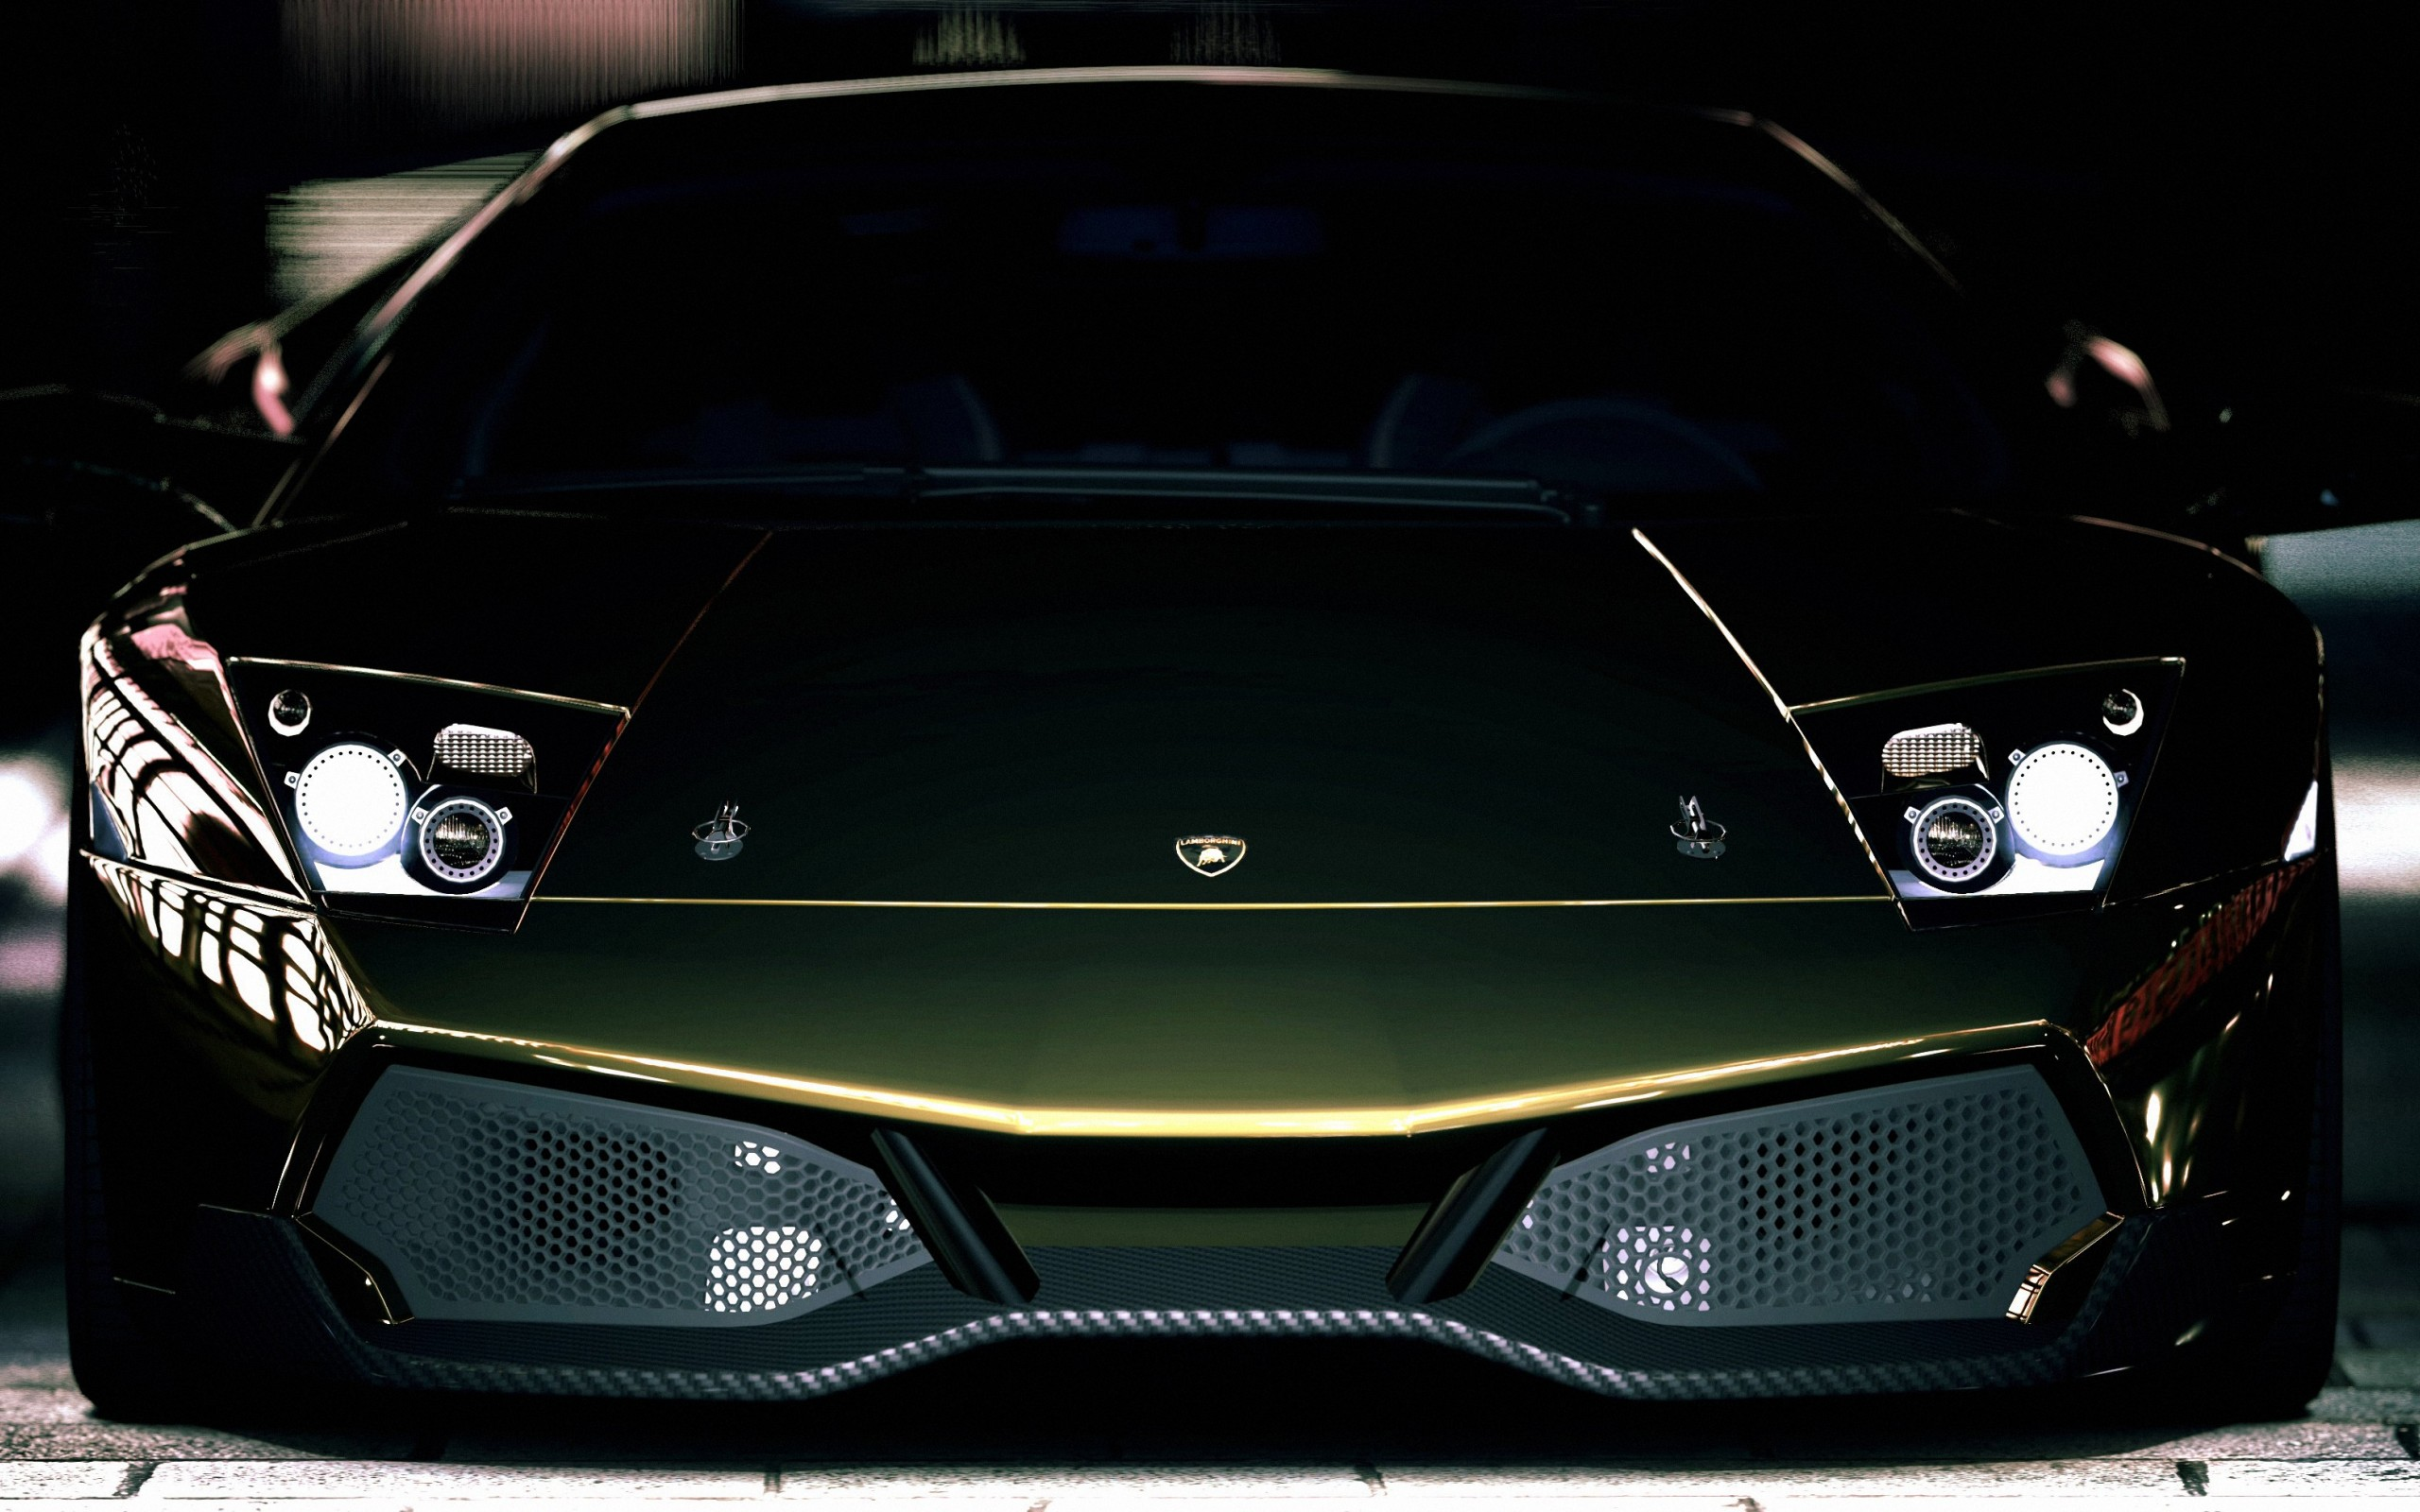 Lamborghini Wallpapers Hd Download Wallpapersafari